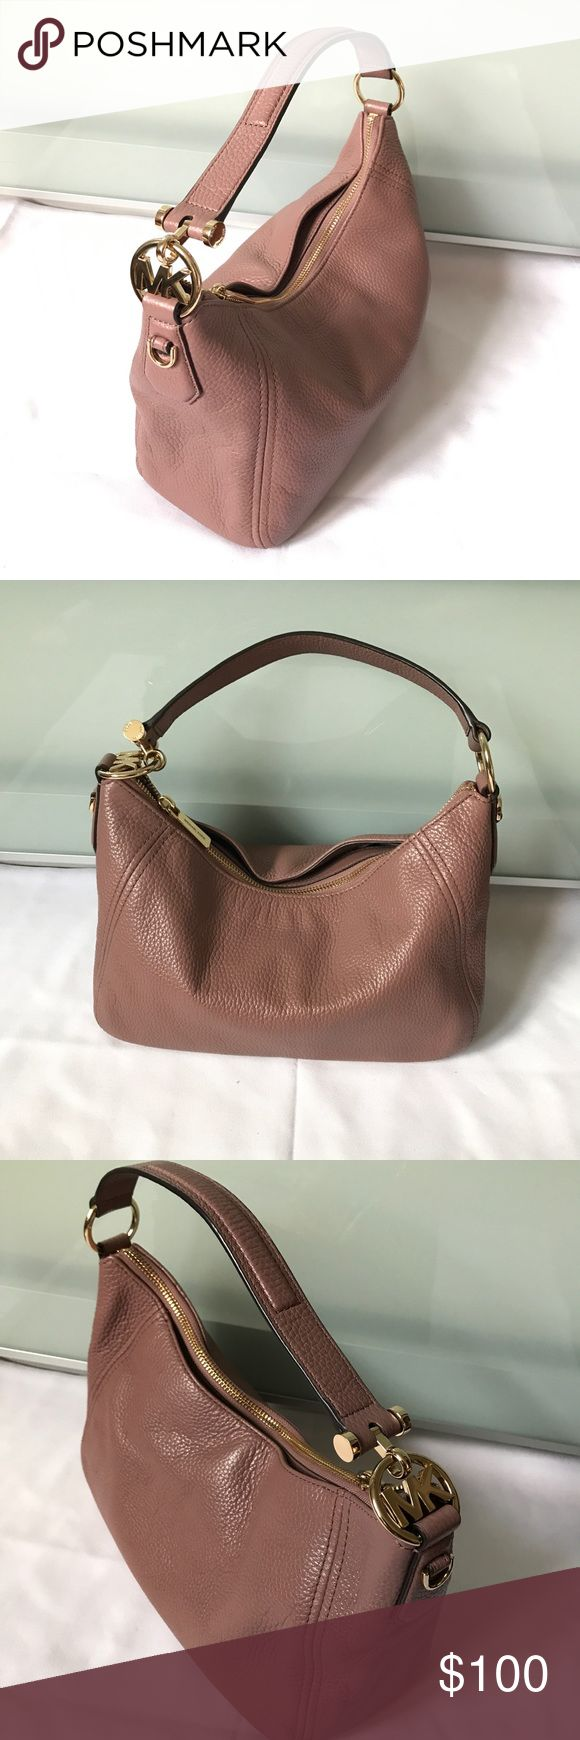 Michael Kors Leather Handbag Used in very good condition, very clean inside and out only thing is scratches on the HW like pictures. Comes with cross body strap. Thanks for looking ❤️ Michael Kors Bags